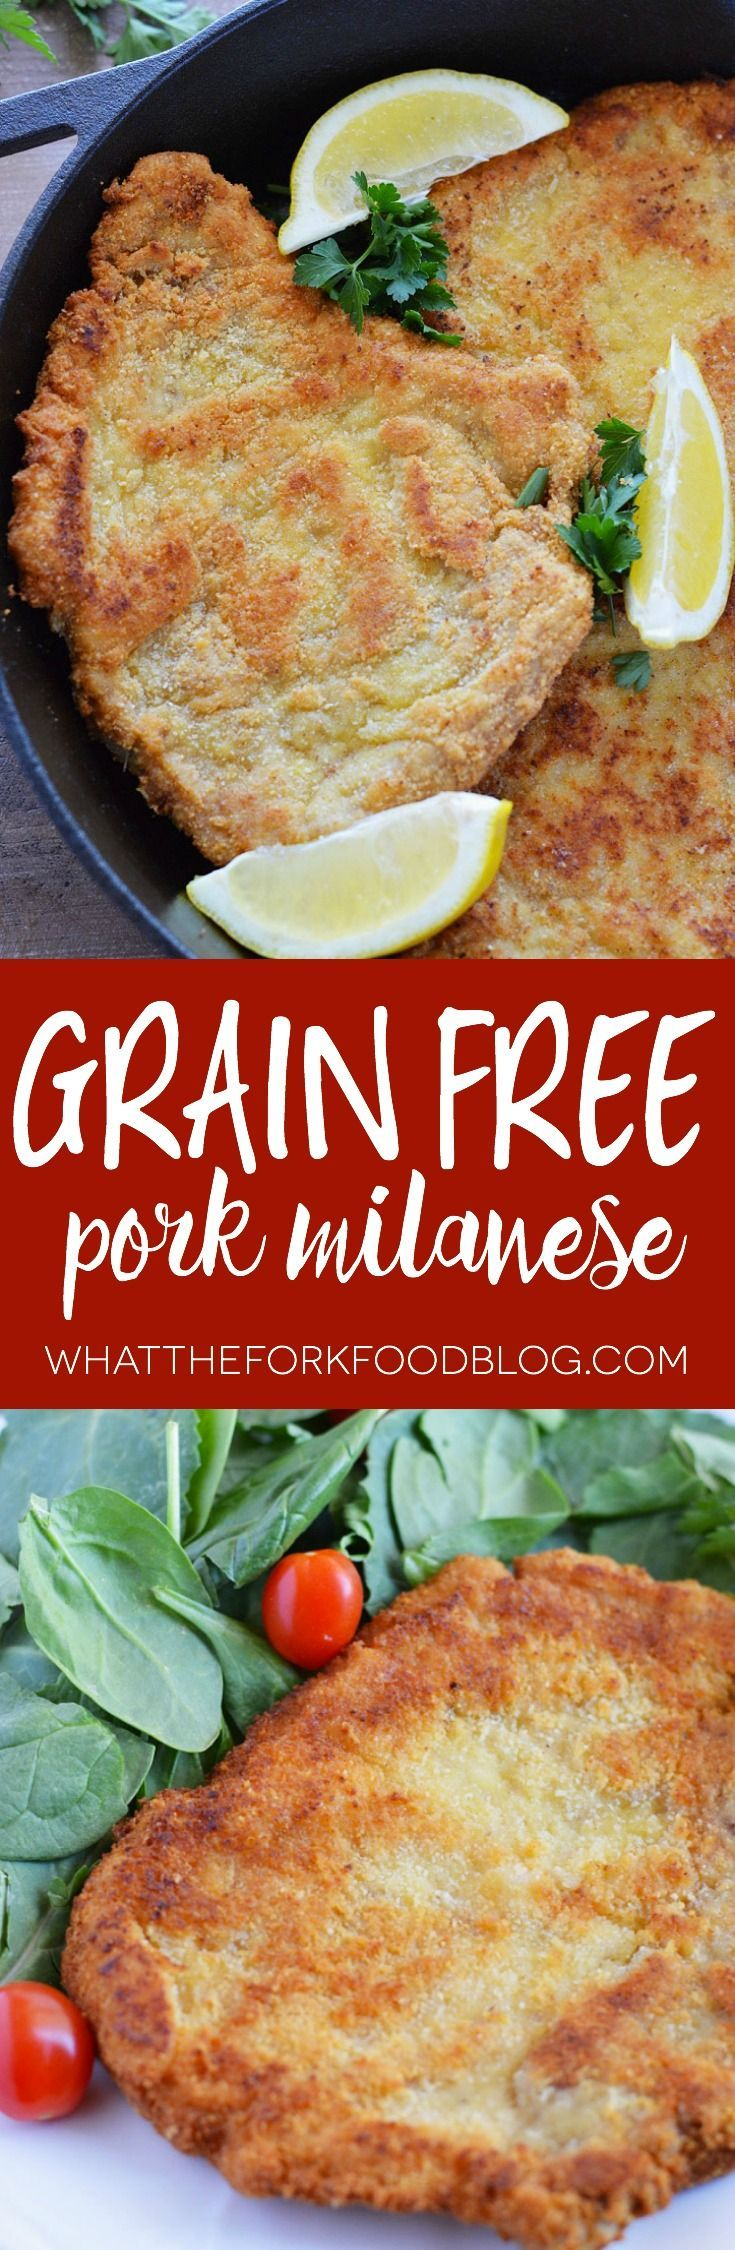 Grain Free Pork Milanese from What The Fork Food Blog made with Butcher Box all natural pork! (grain free and gluten free)